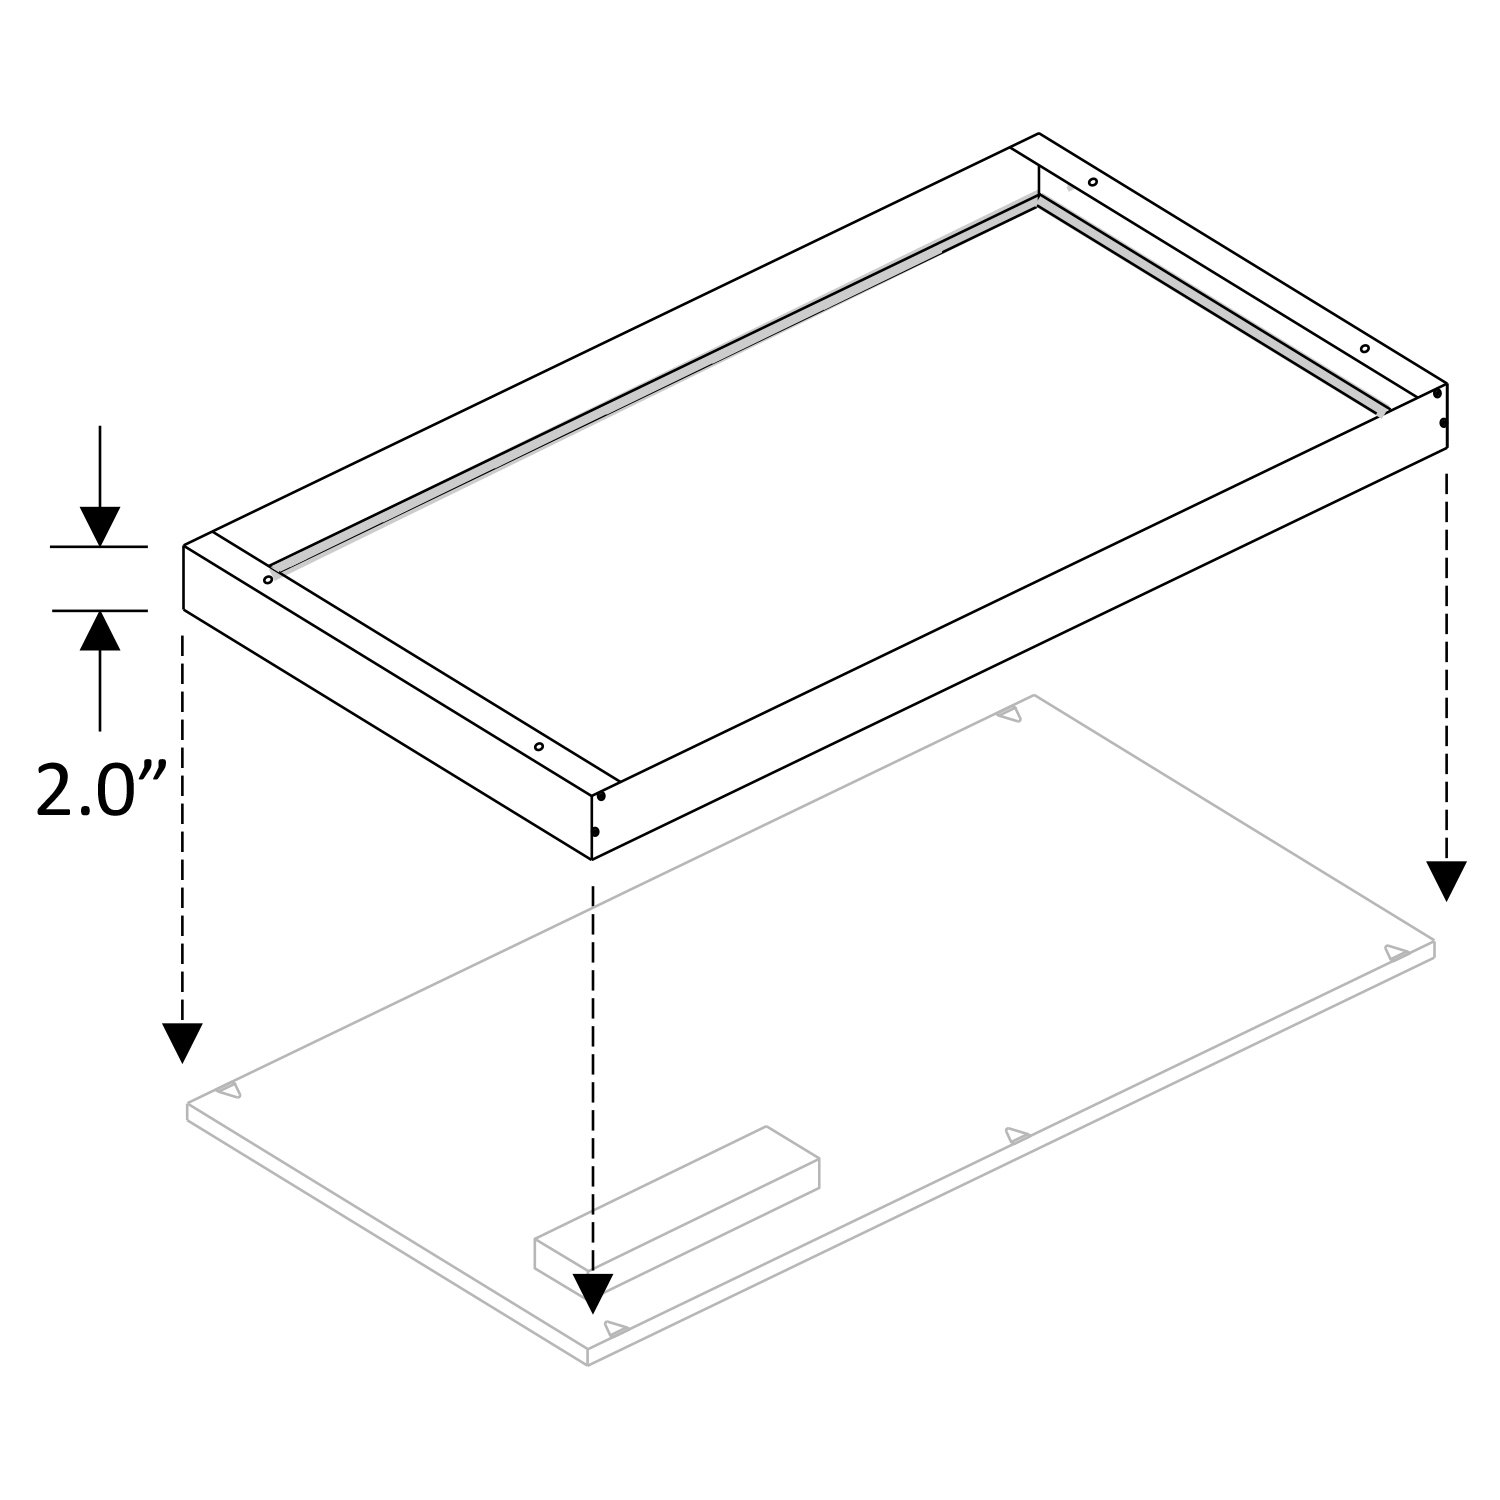 Cost Less Lighting Surface Mount Kit for 2x4 LED Flat Panel Drop Ceiling Light - Edge-Lit Light Fixture - 05-LEDPNL-SMKT24 u003c Bay Lighting u003c Tools u0026 Home ...  sc 1 st  TIBS & Cost Less Lighting Surface Mount Kit for 2x4 LED Flat Panel Drop ...